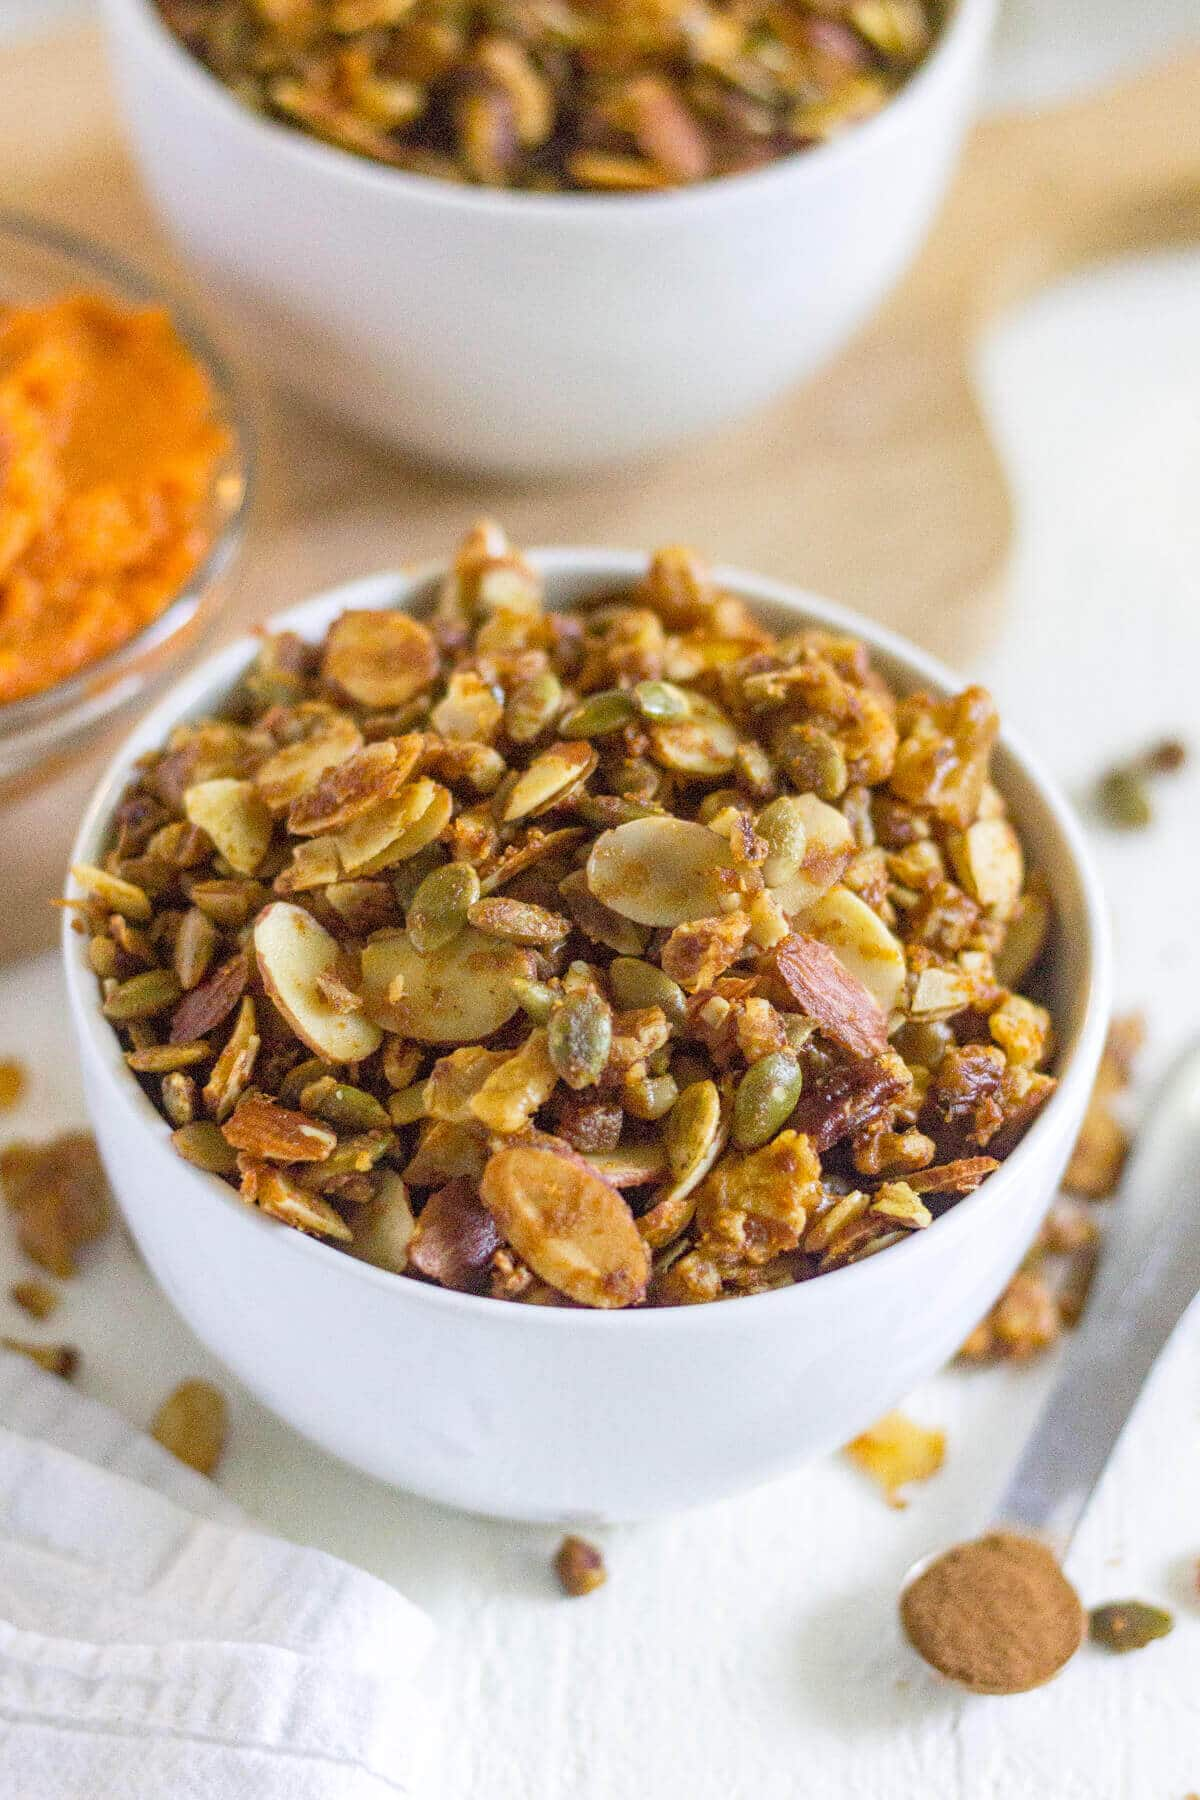 Grain free pumpkin granola is your next easy, gluten free and paleo breakfast for fall! Made with nuts, seeds, coconut and pumpkin spice, this healthy breakfast recipe will start your day with a crunch.